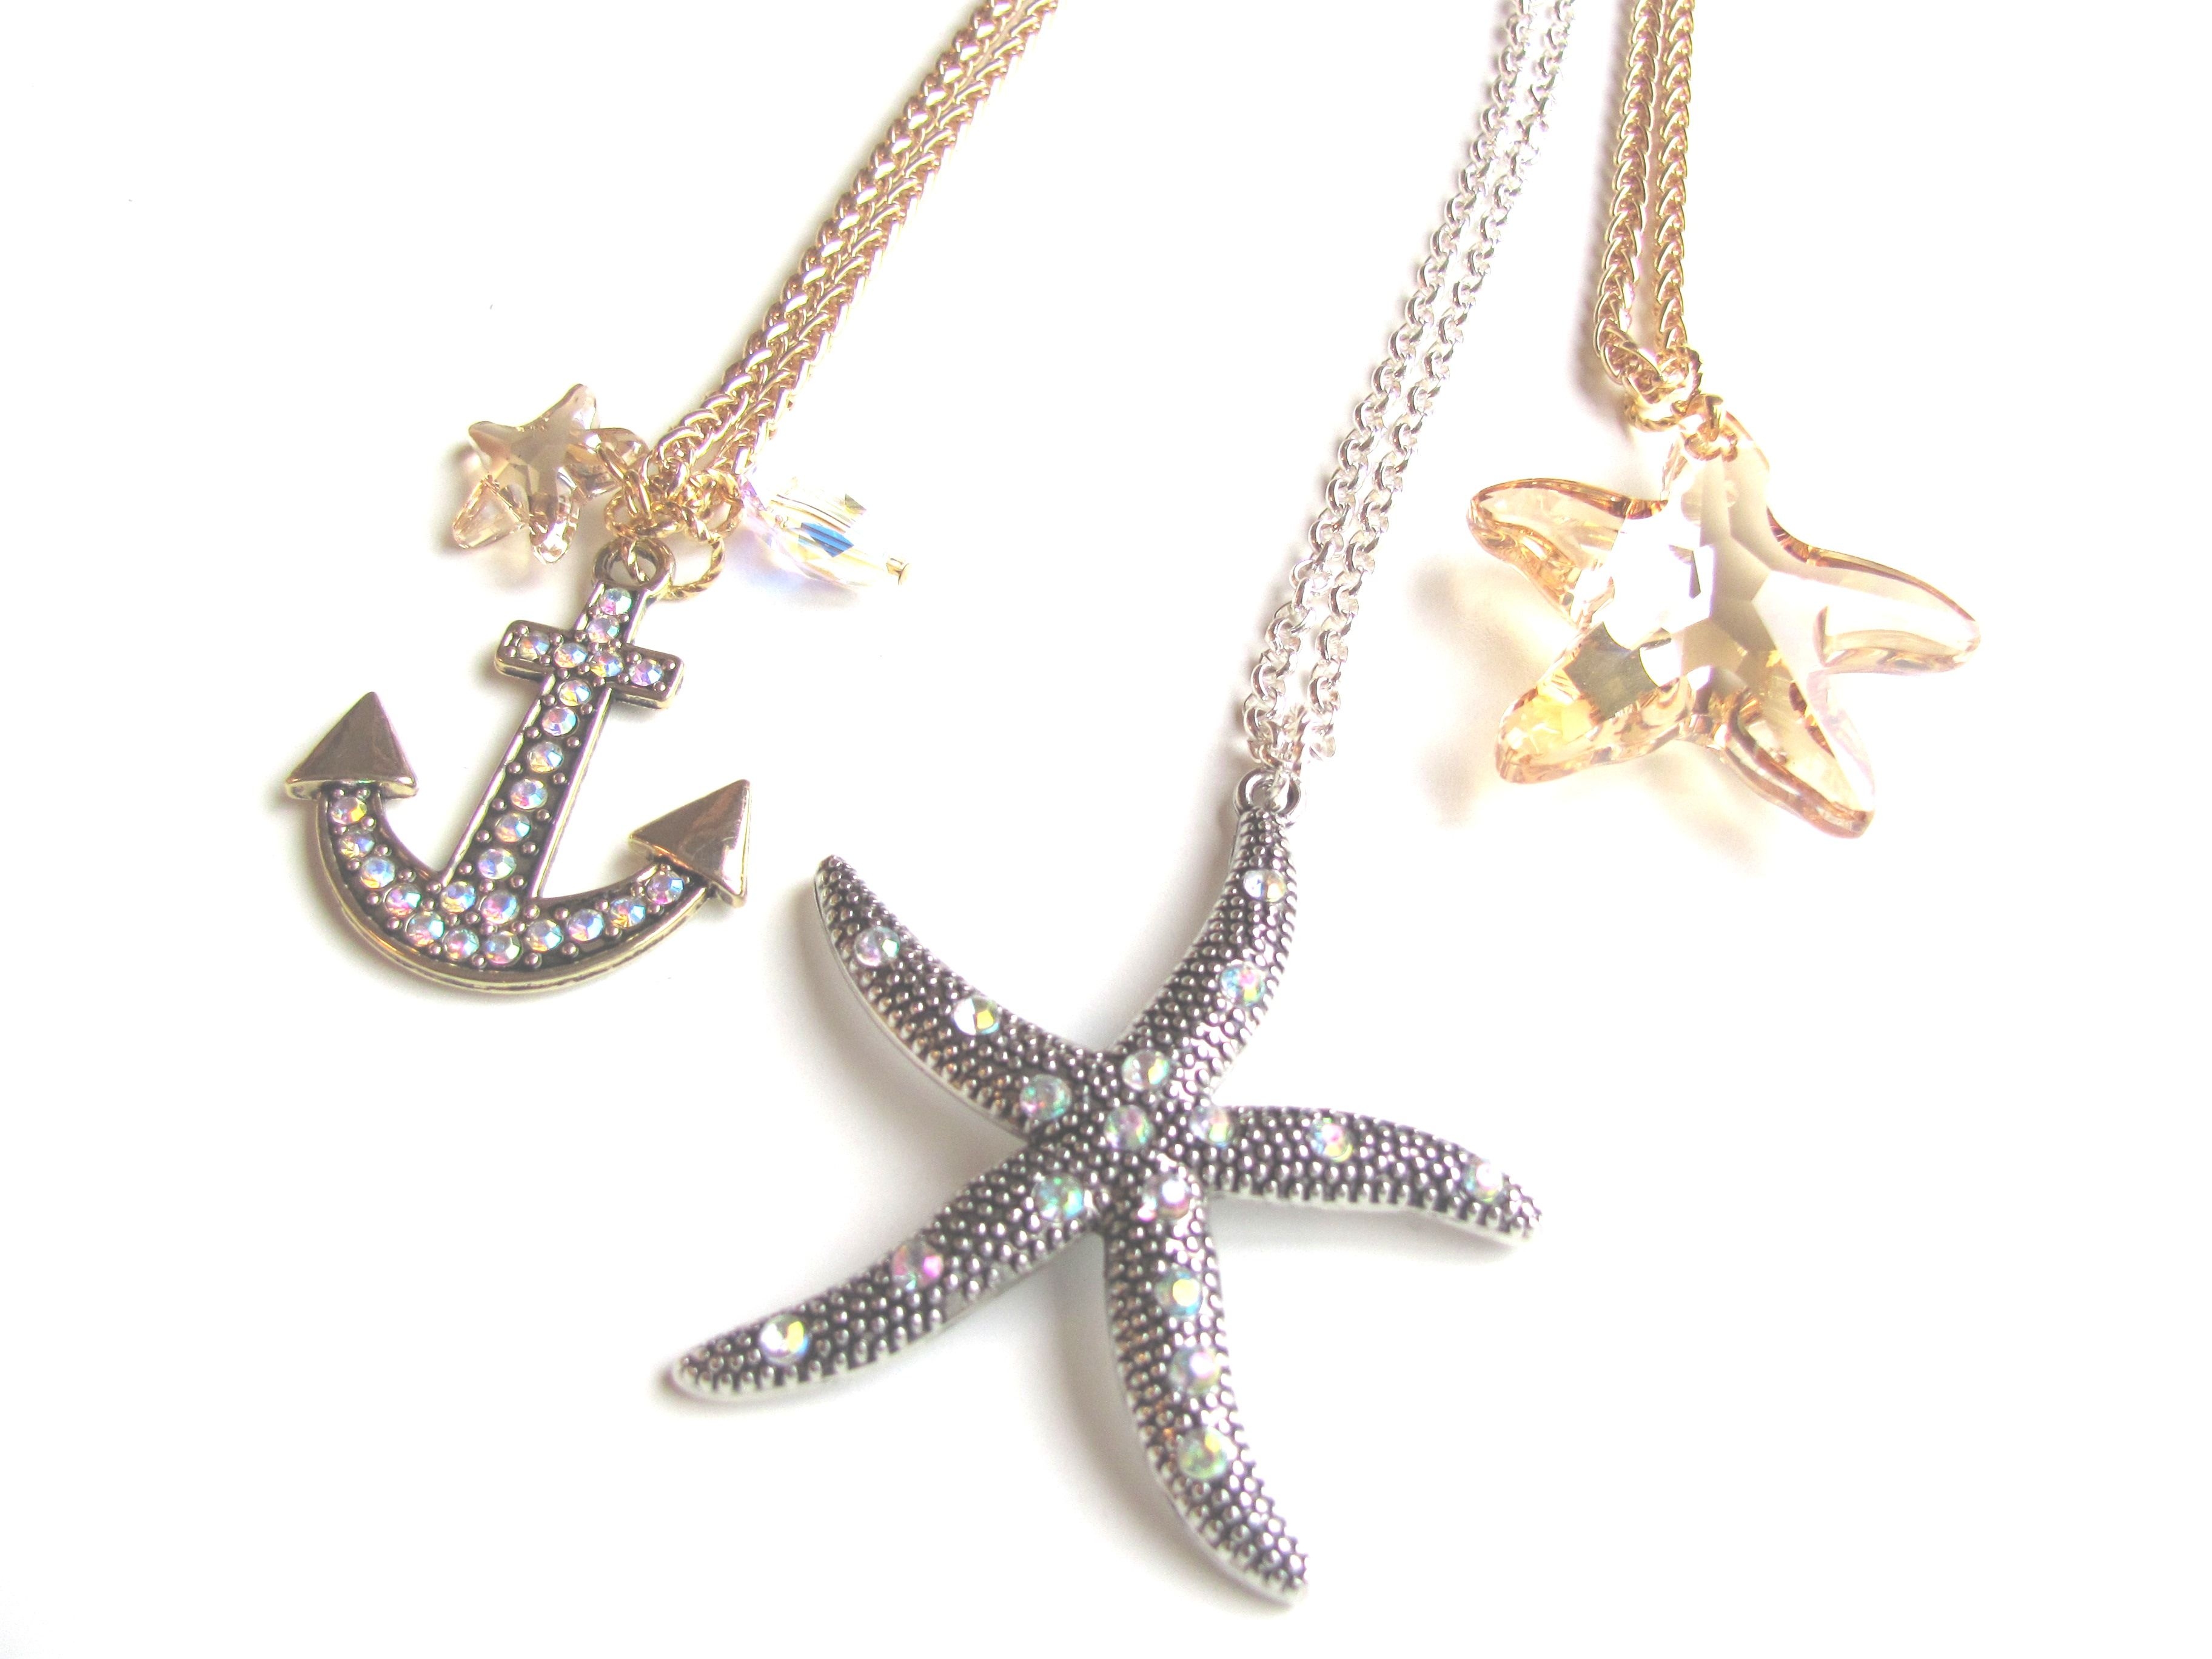 By the Sea Necklace from our Nautical collection www.beadzou.com